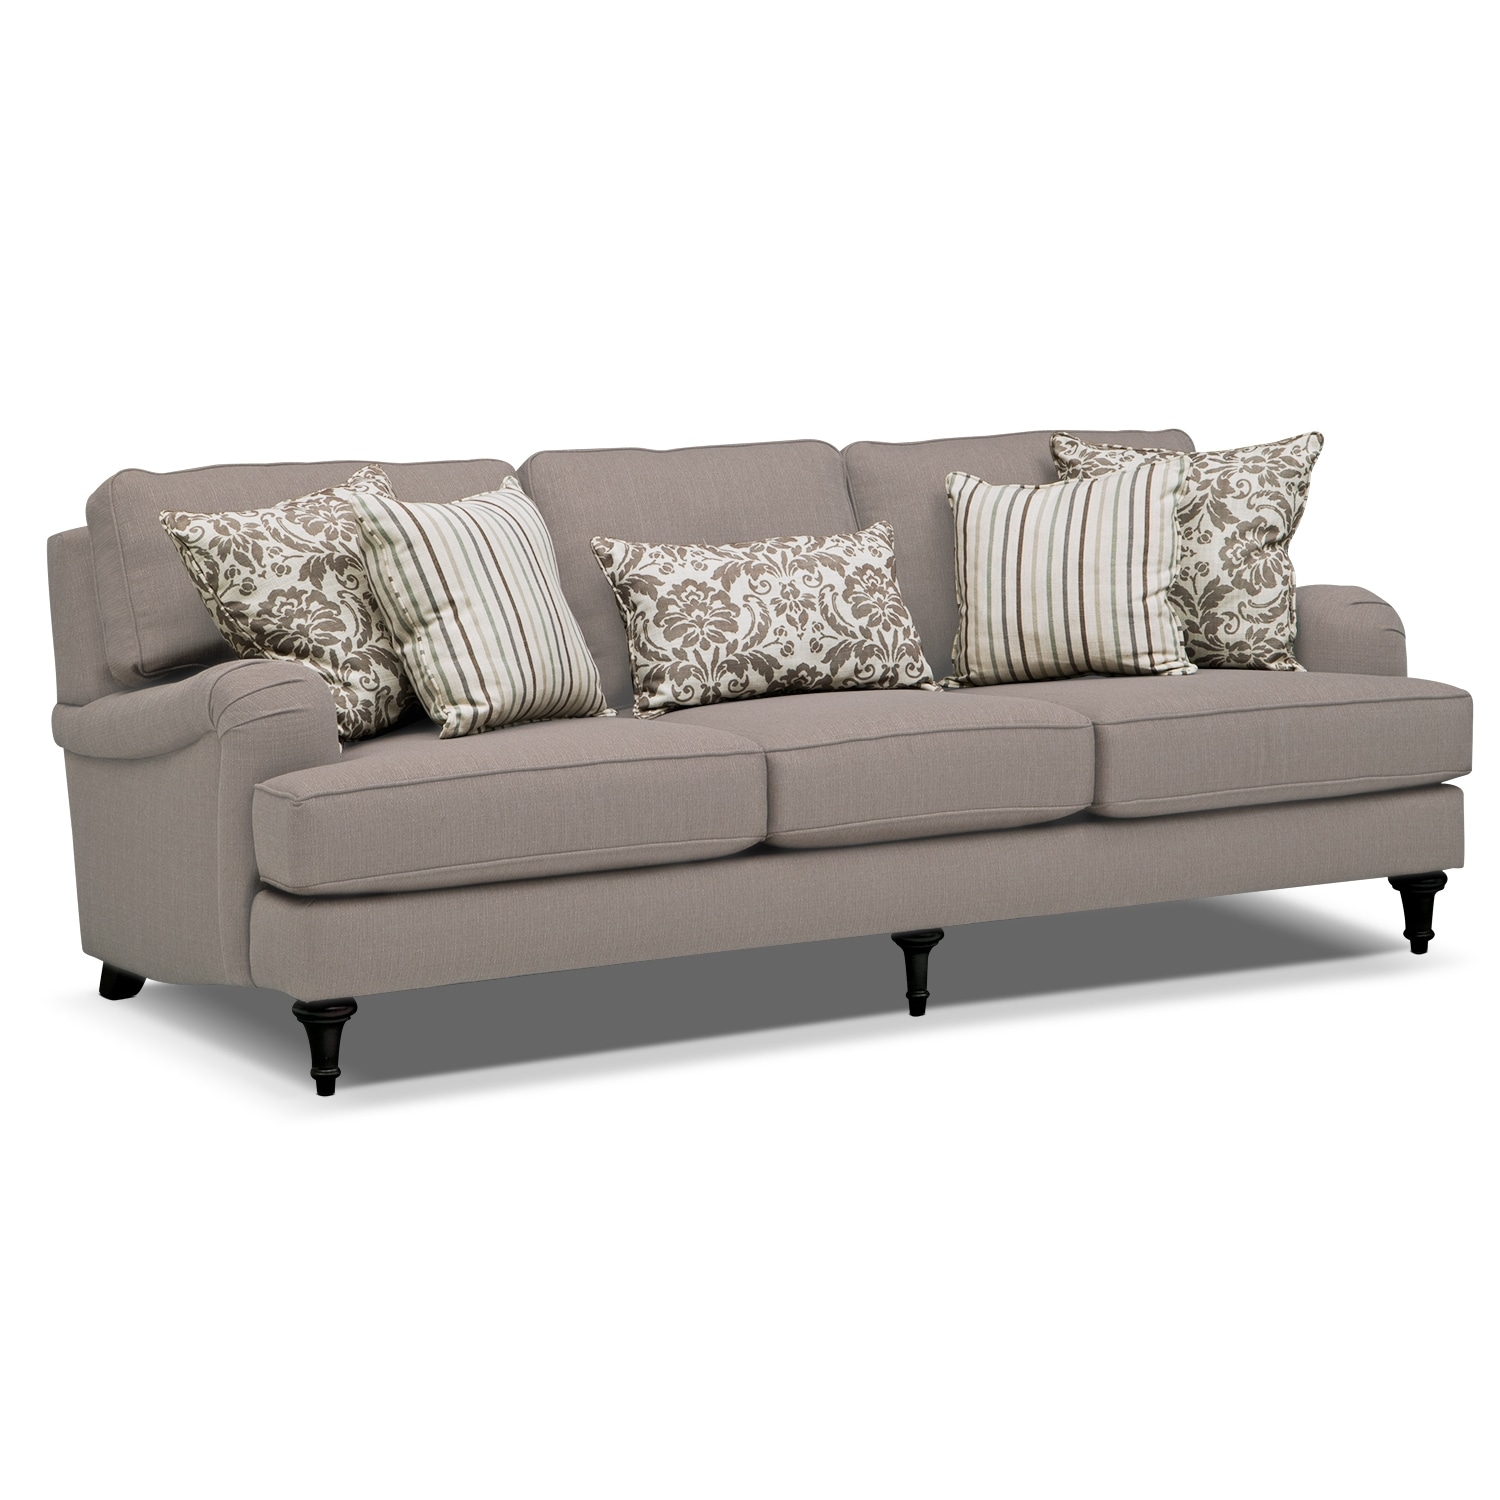 Candice sofa gray american signature furniture Sofa loveseat